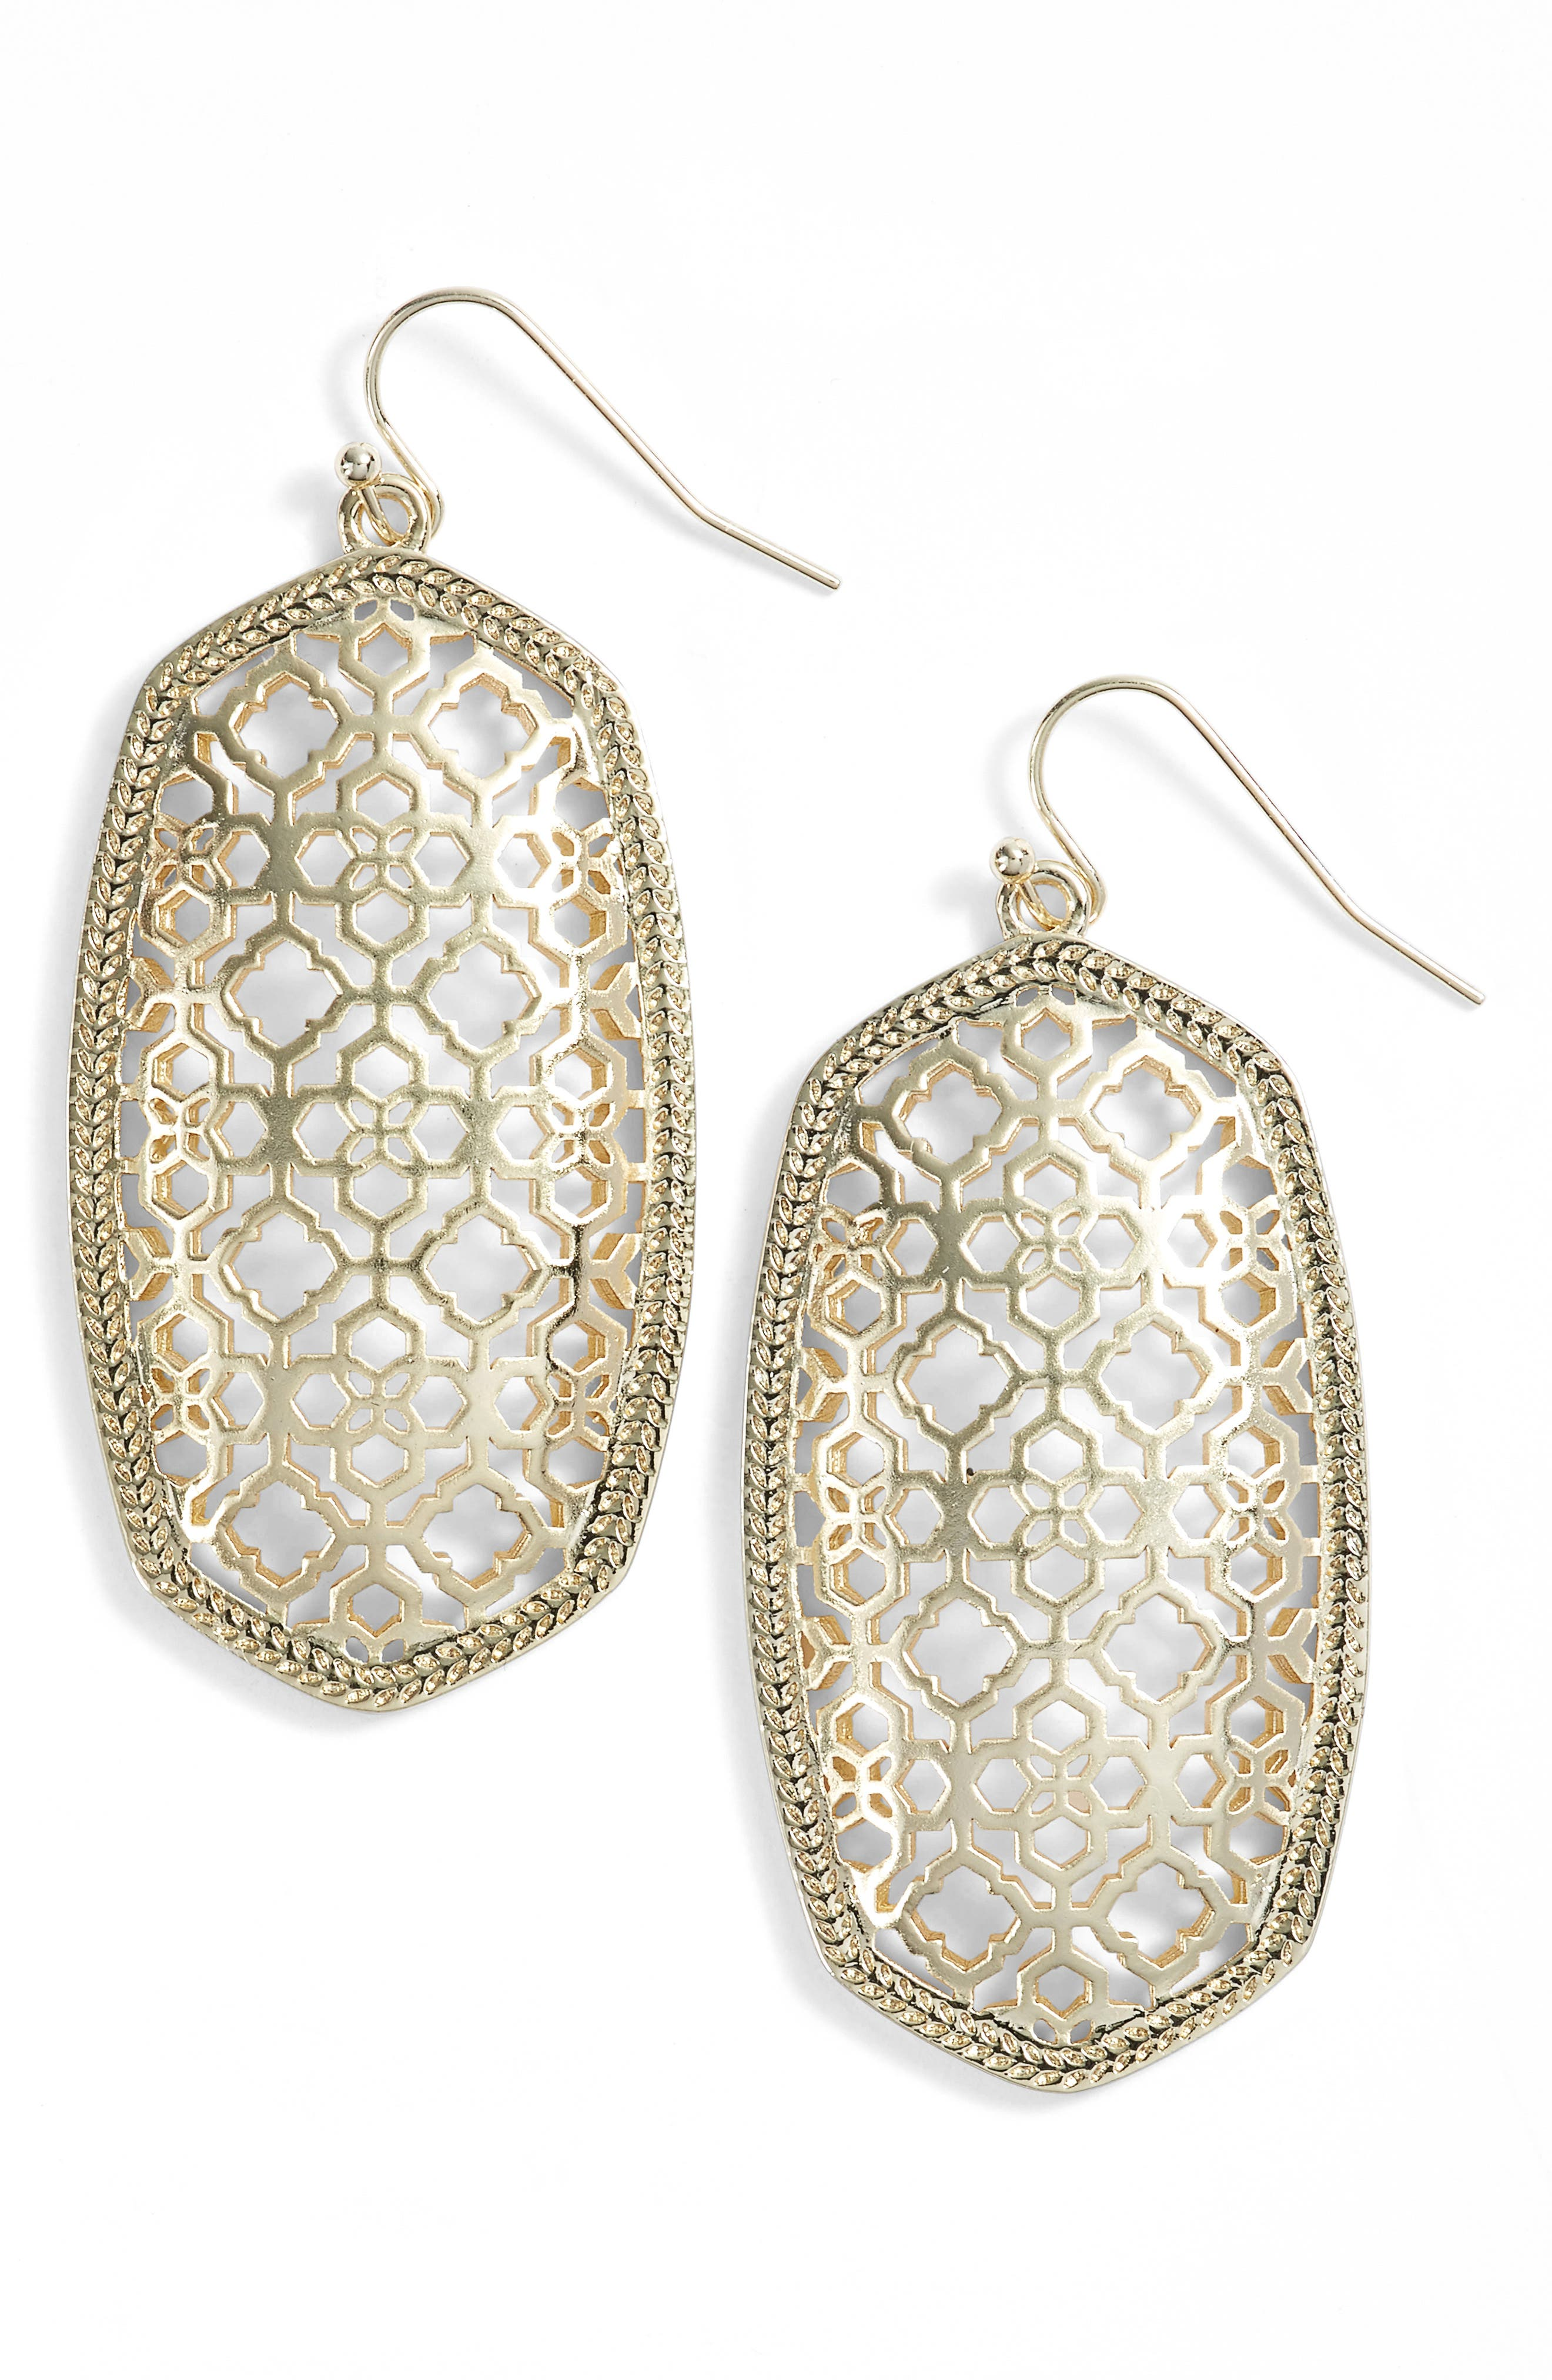 Danielle - Large Oval Statement Earrings,                             Main thumbnail 85, color,